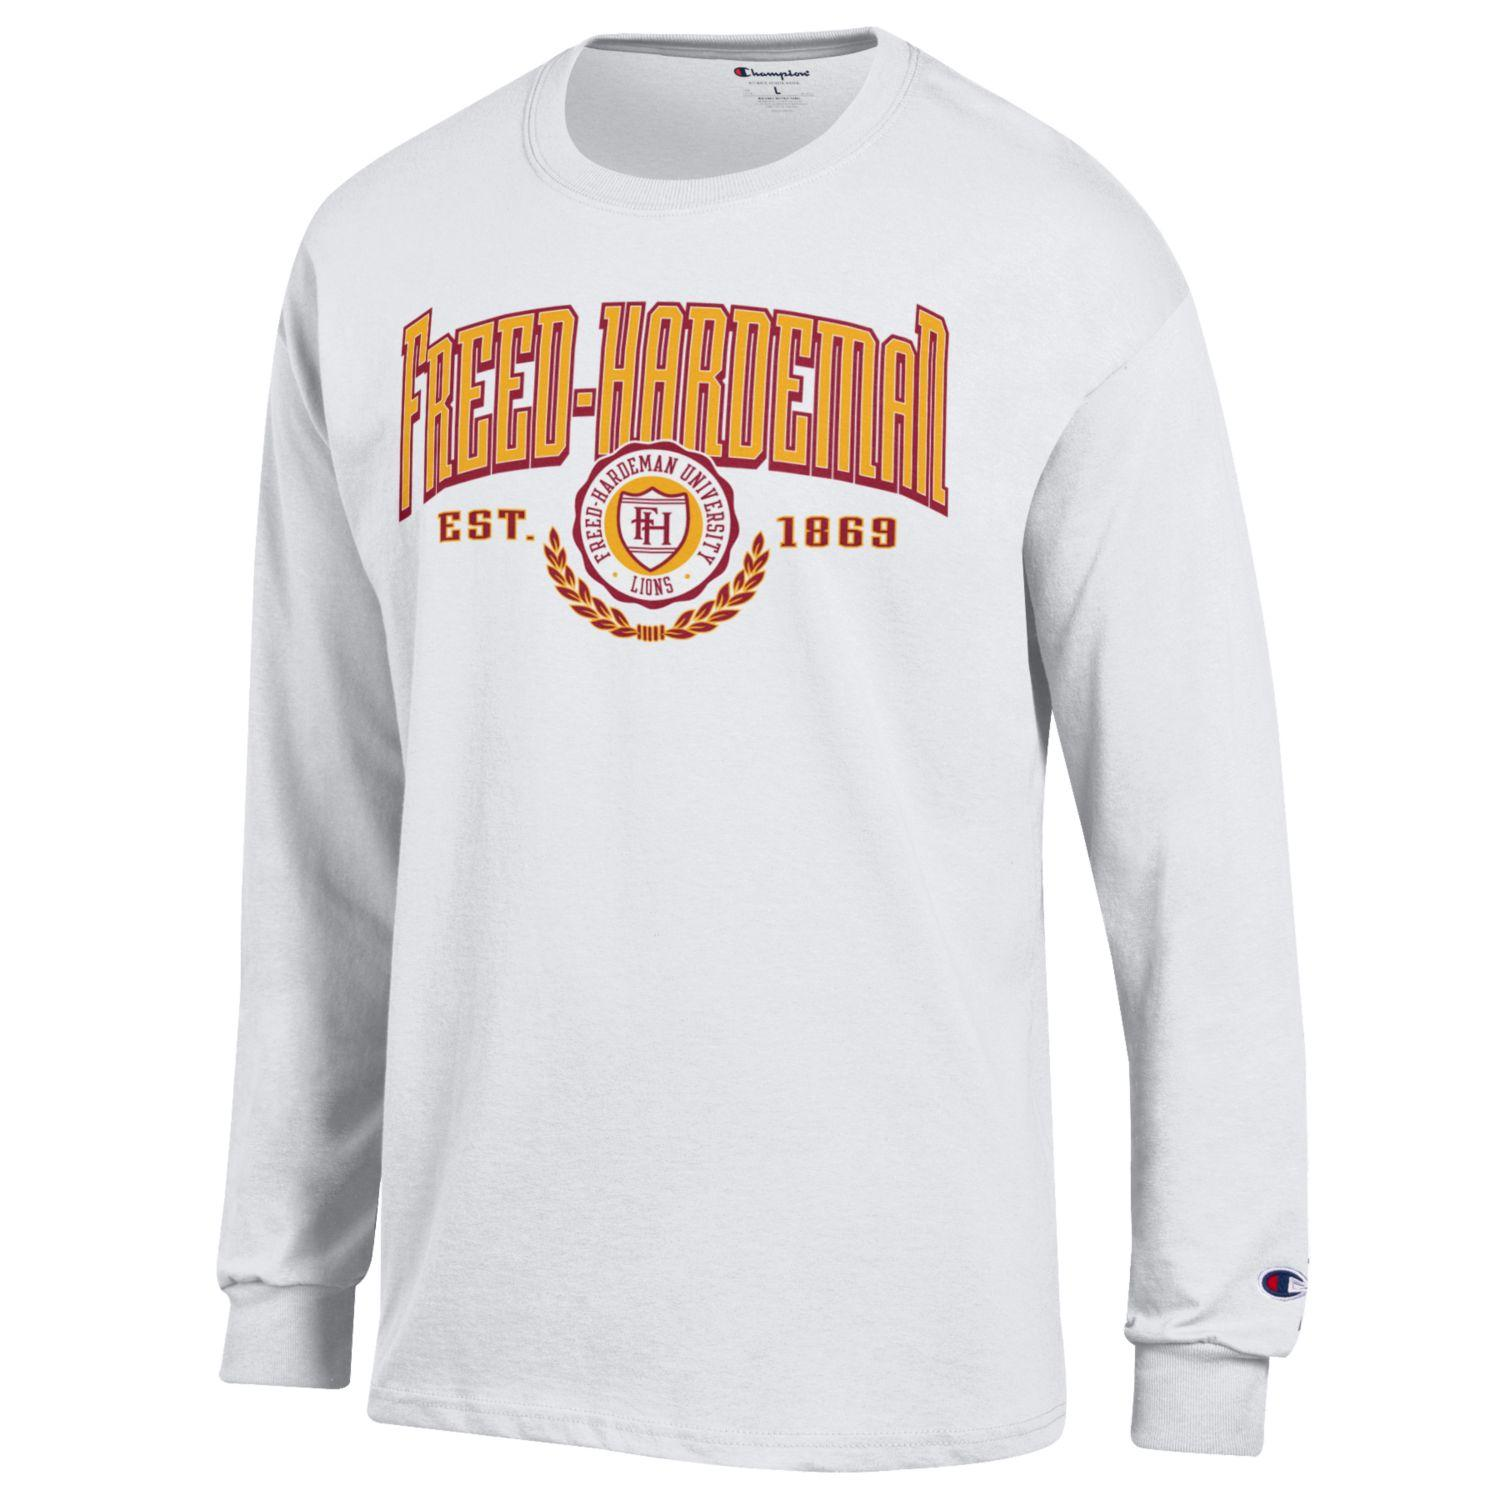 FHU Long Sleeve Tee